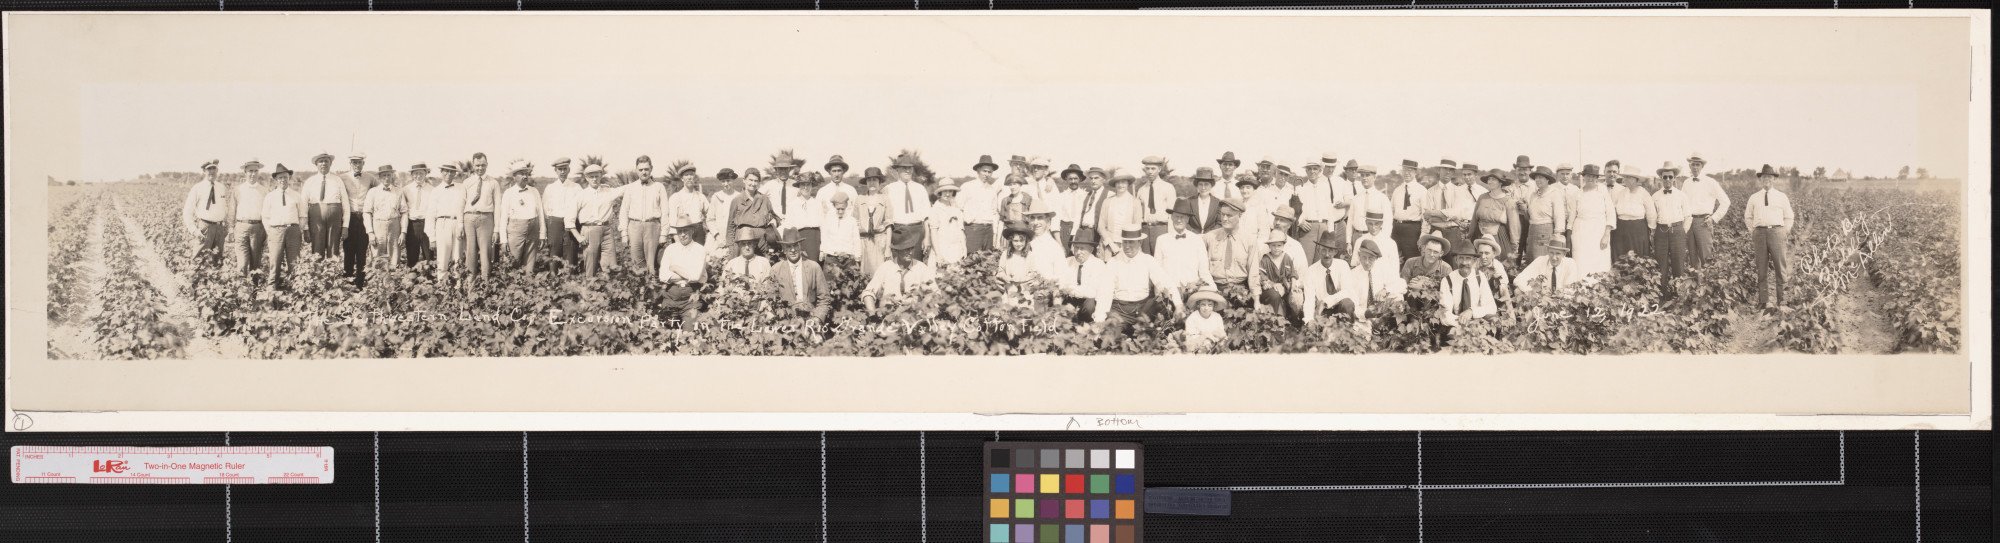 Southwestern Land Co. excursion party in the Lower Rio Grande Valley, Texas cotton field                                                                                                      [Sequence #]: 1 of 1